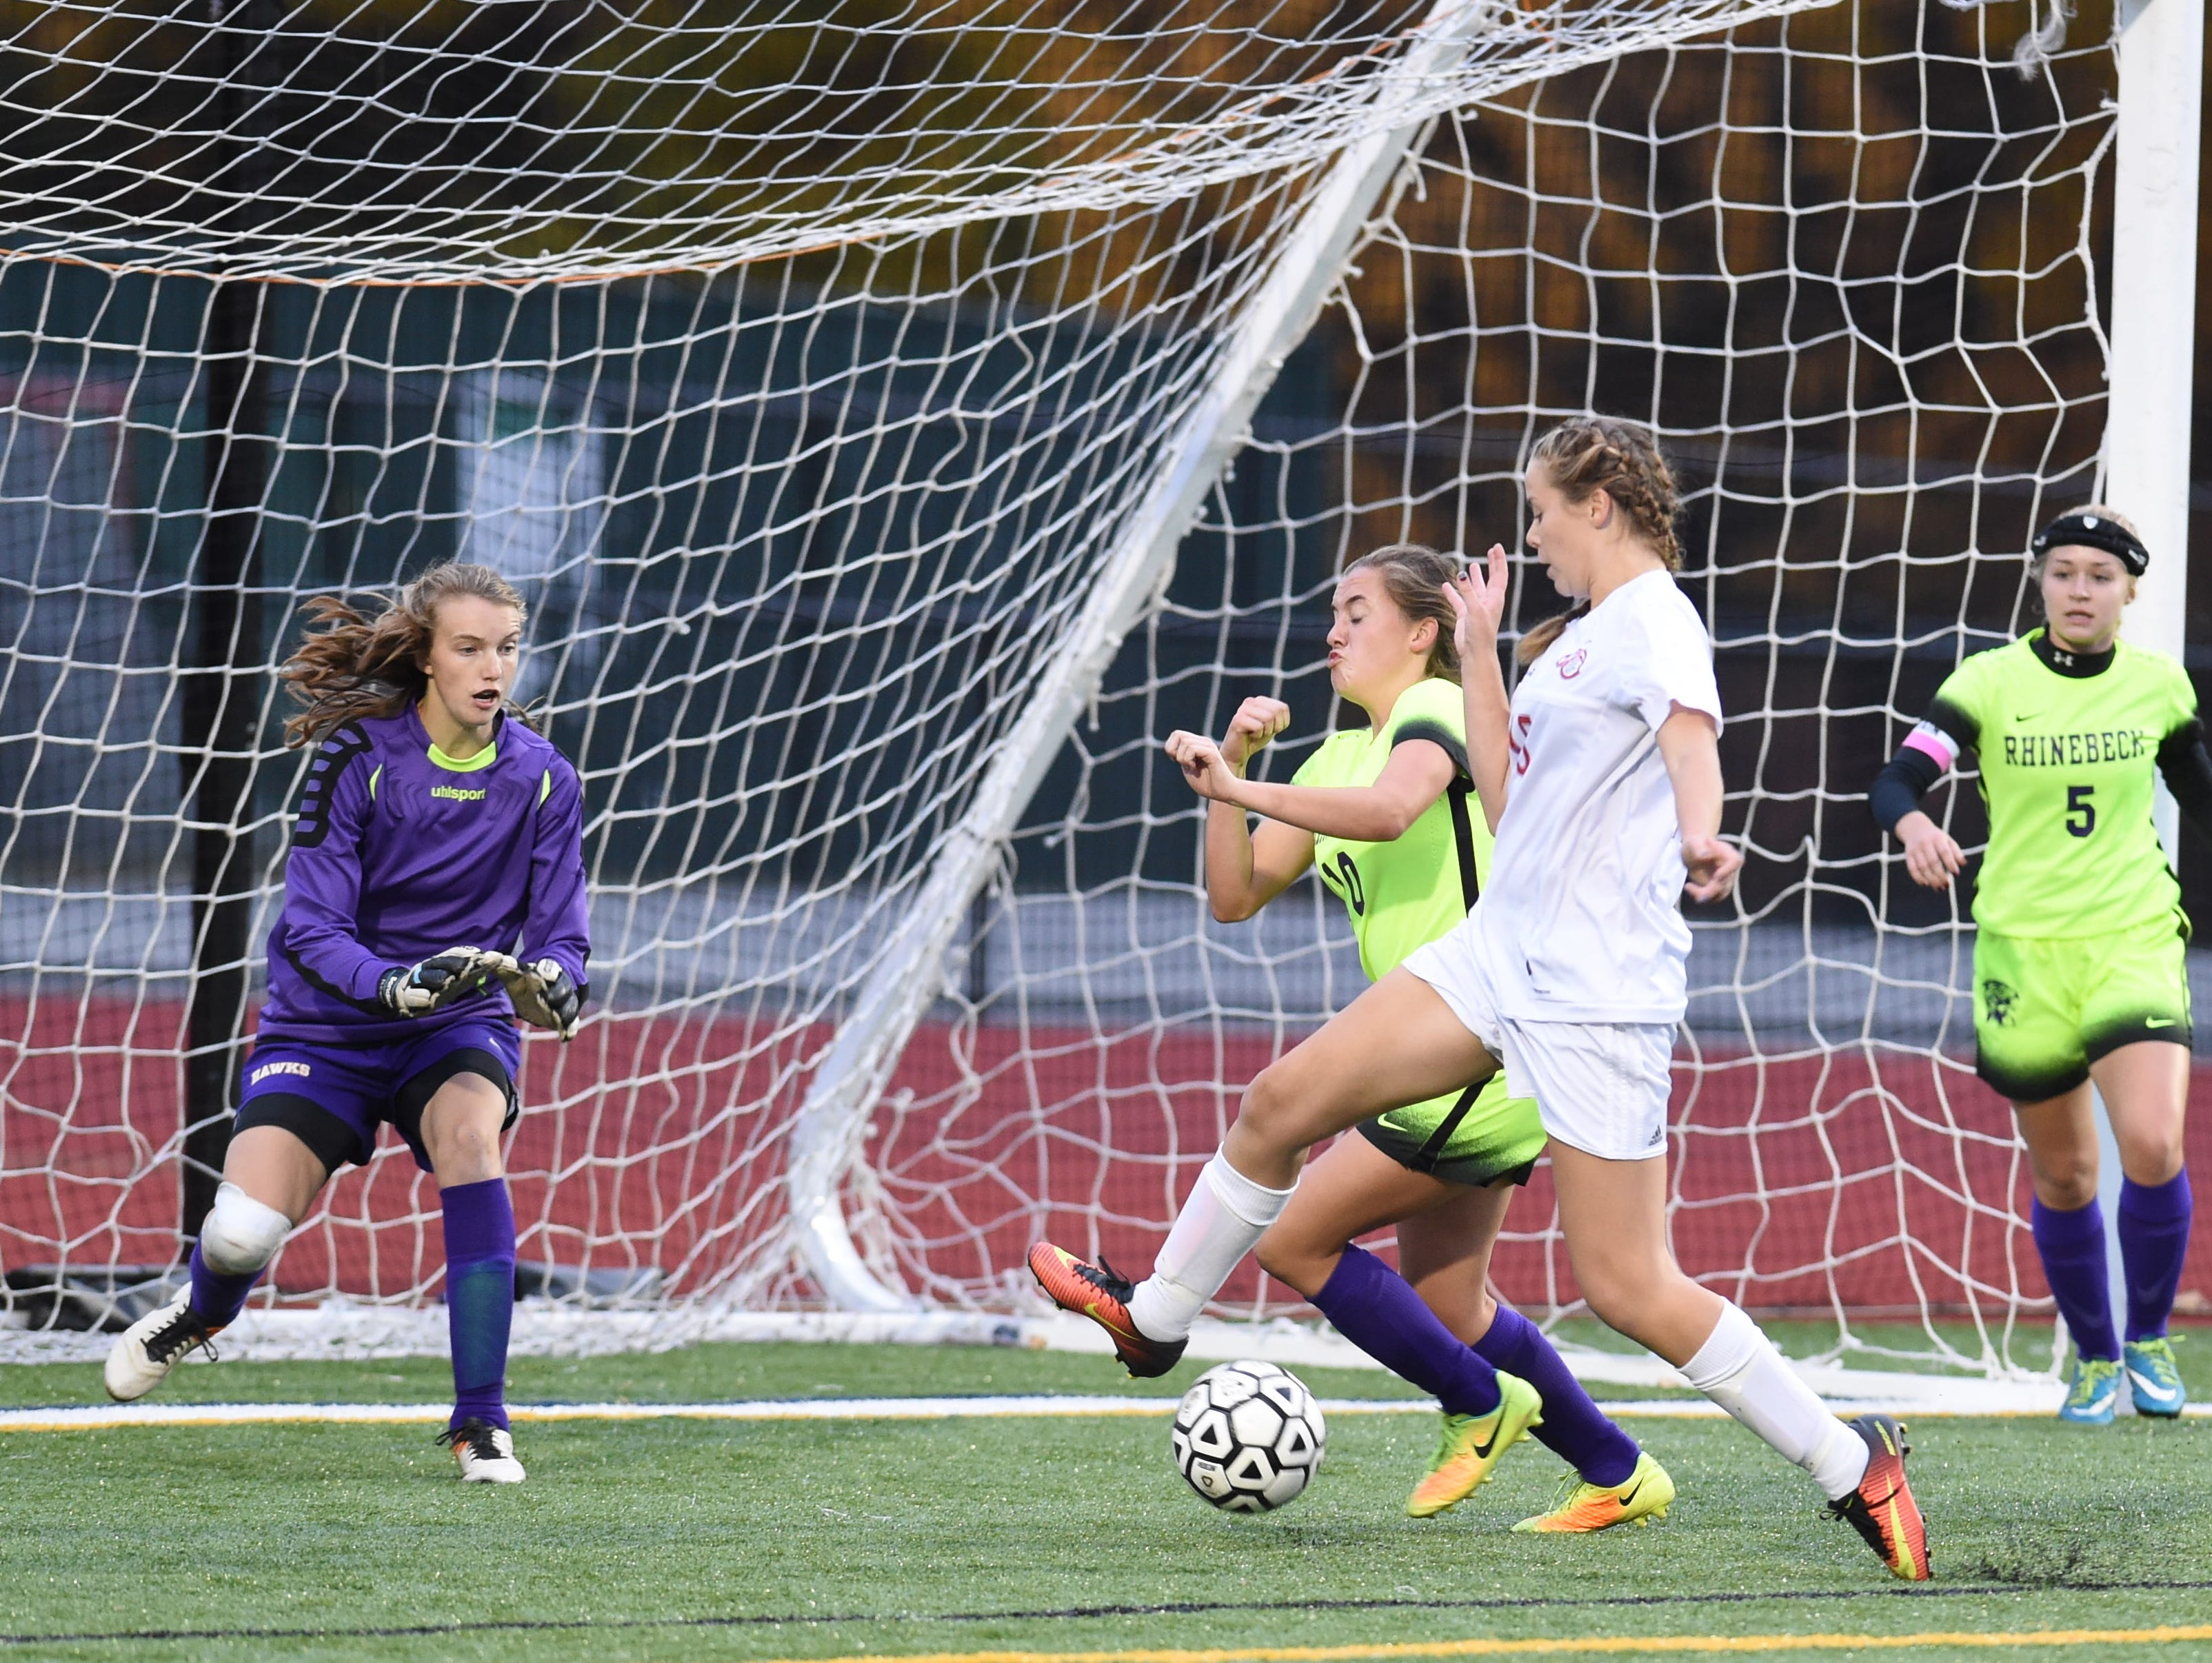 Red Hook's AJ Fuchs-White gets within striking distance of Rhinebeck's goal, as she's covered by, from left, Danielle Amidon, Sarah Tobias and Alex Dunn during Thursday's MHAL girls soccer championship at Franklin D. Roosevelt High School. Red Hook won 1-0.